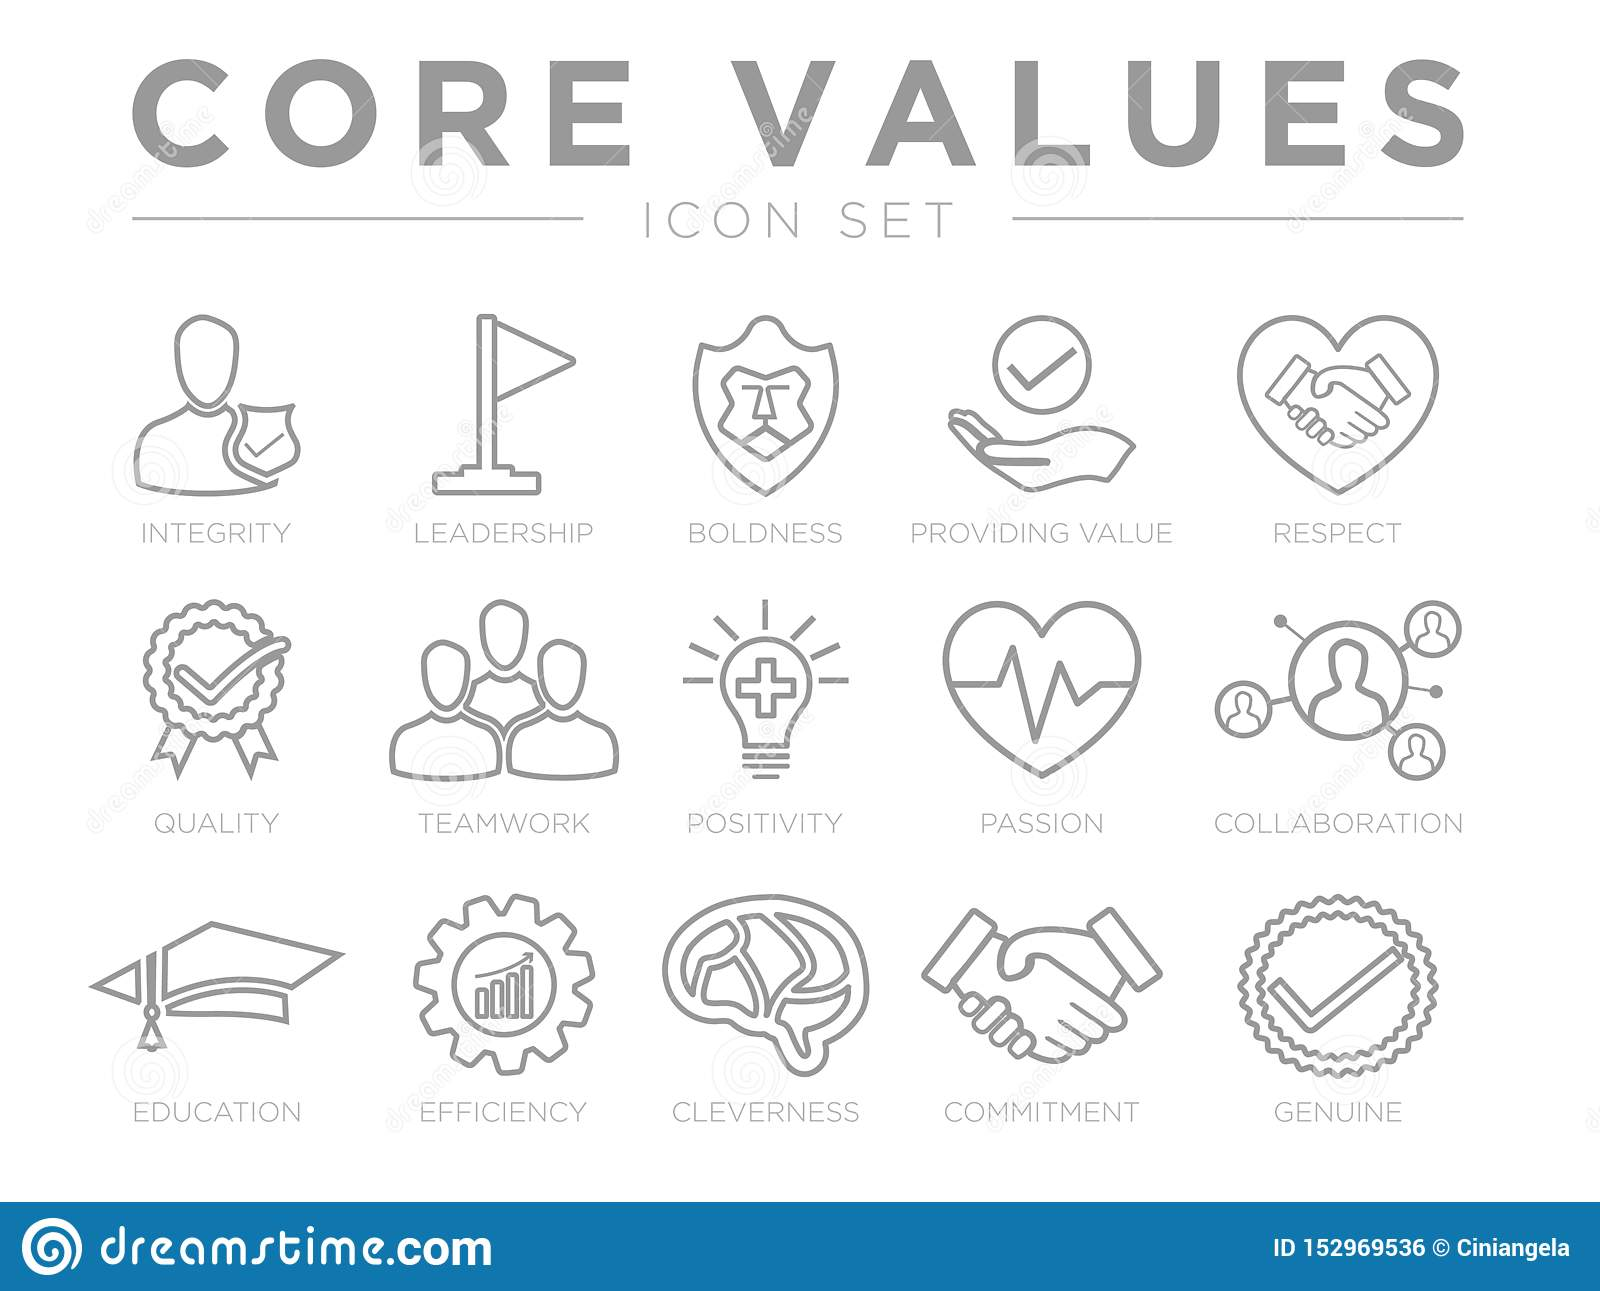 Business Company Values Outline Icon Set. Integrity, Leadership, Boldness, Value, Respect, Quality, Teamwork, Positivity, Passion